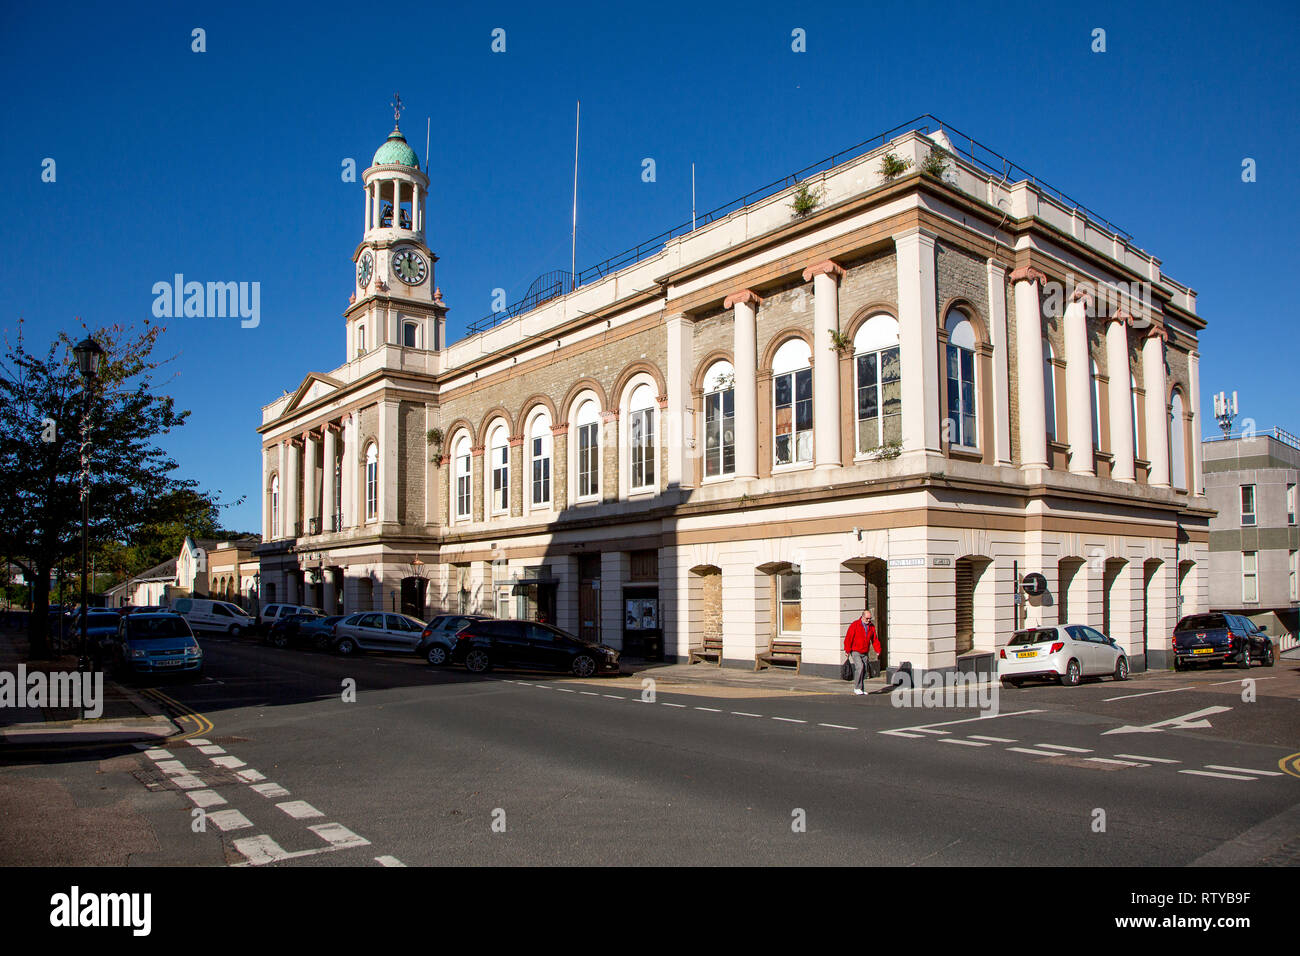 Town Hall, Ryde, Isle of Wight, England, UK, - Stock Image